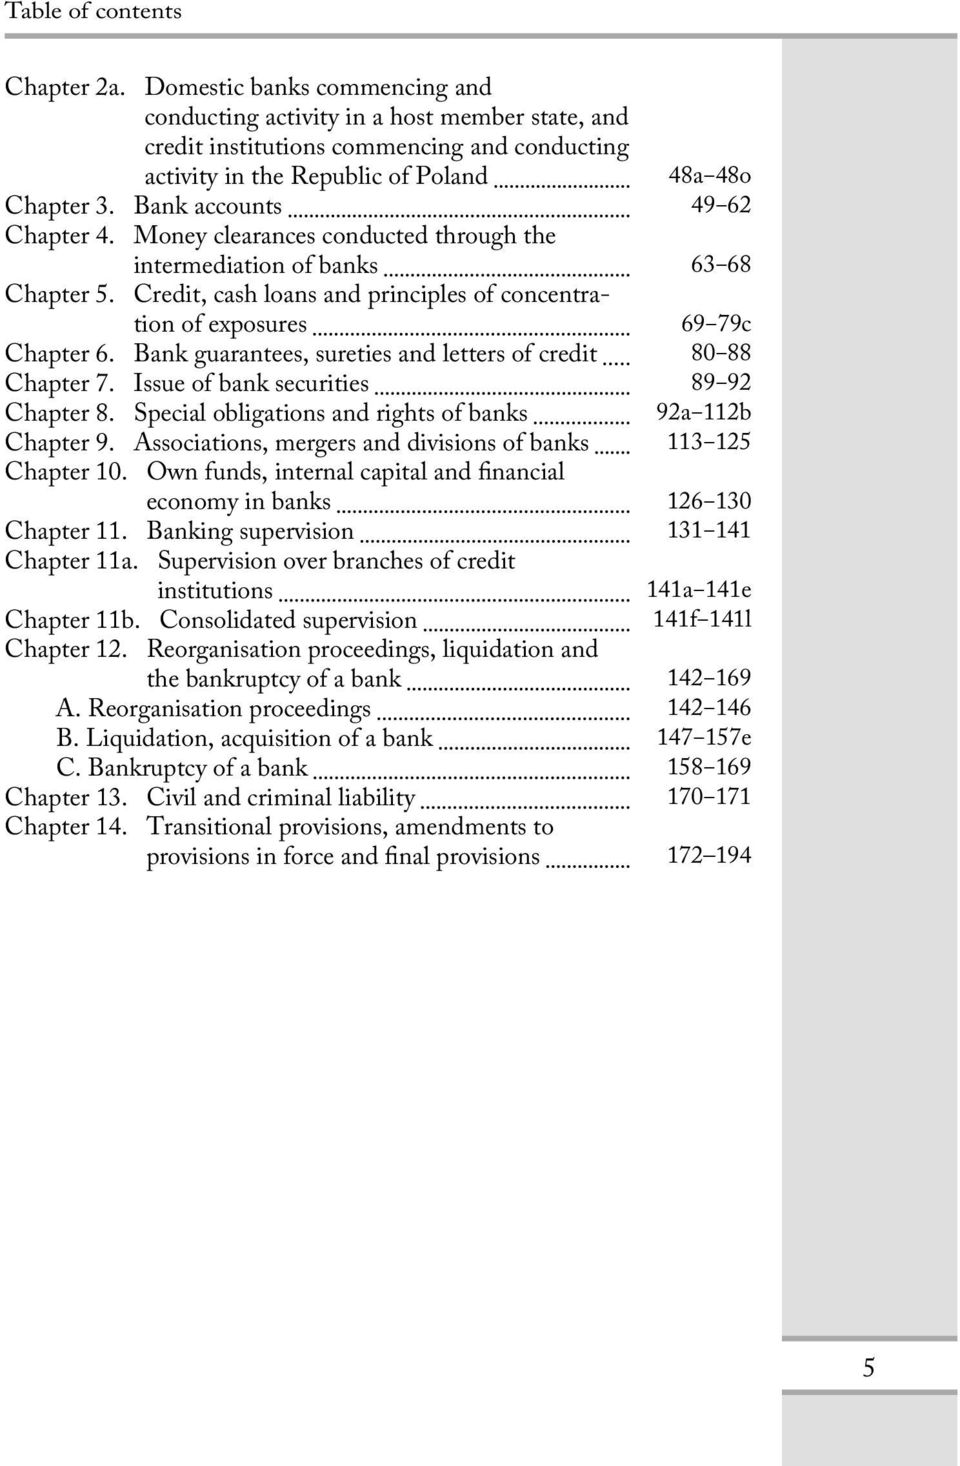 Bank guarantees, sureties and letters of credit Chapter 7. Issue of bank securities Chapter 8. Special obligations and rights of banks Chapter 9.